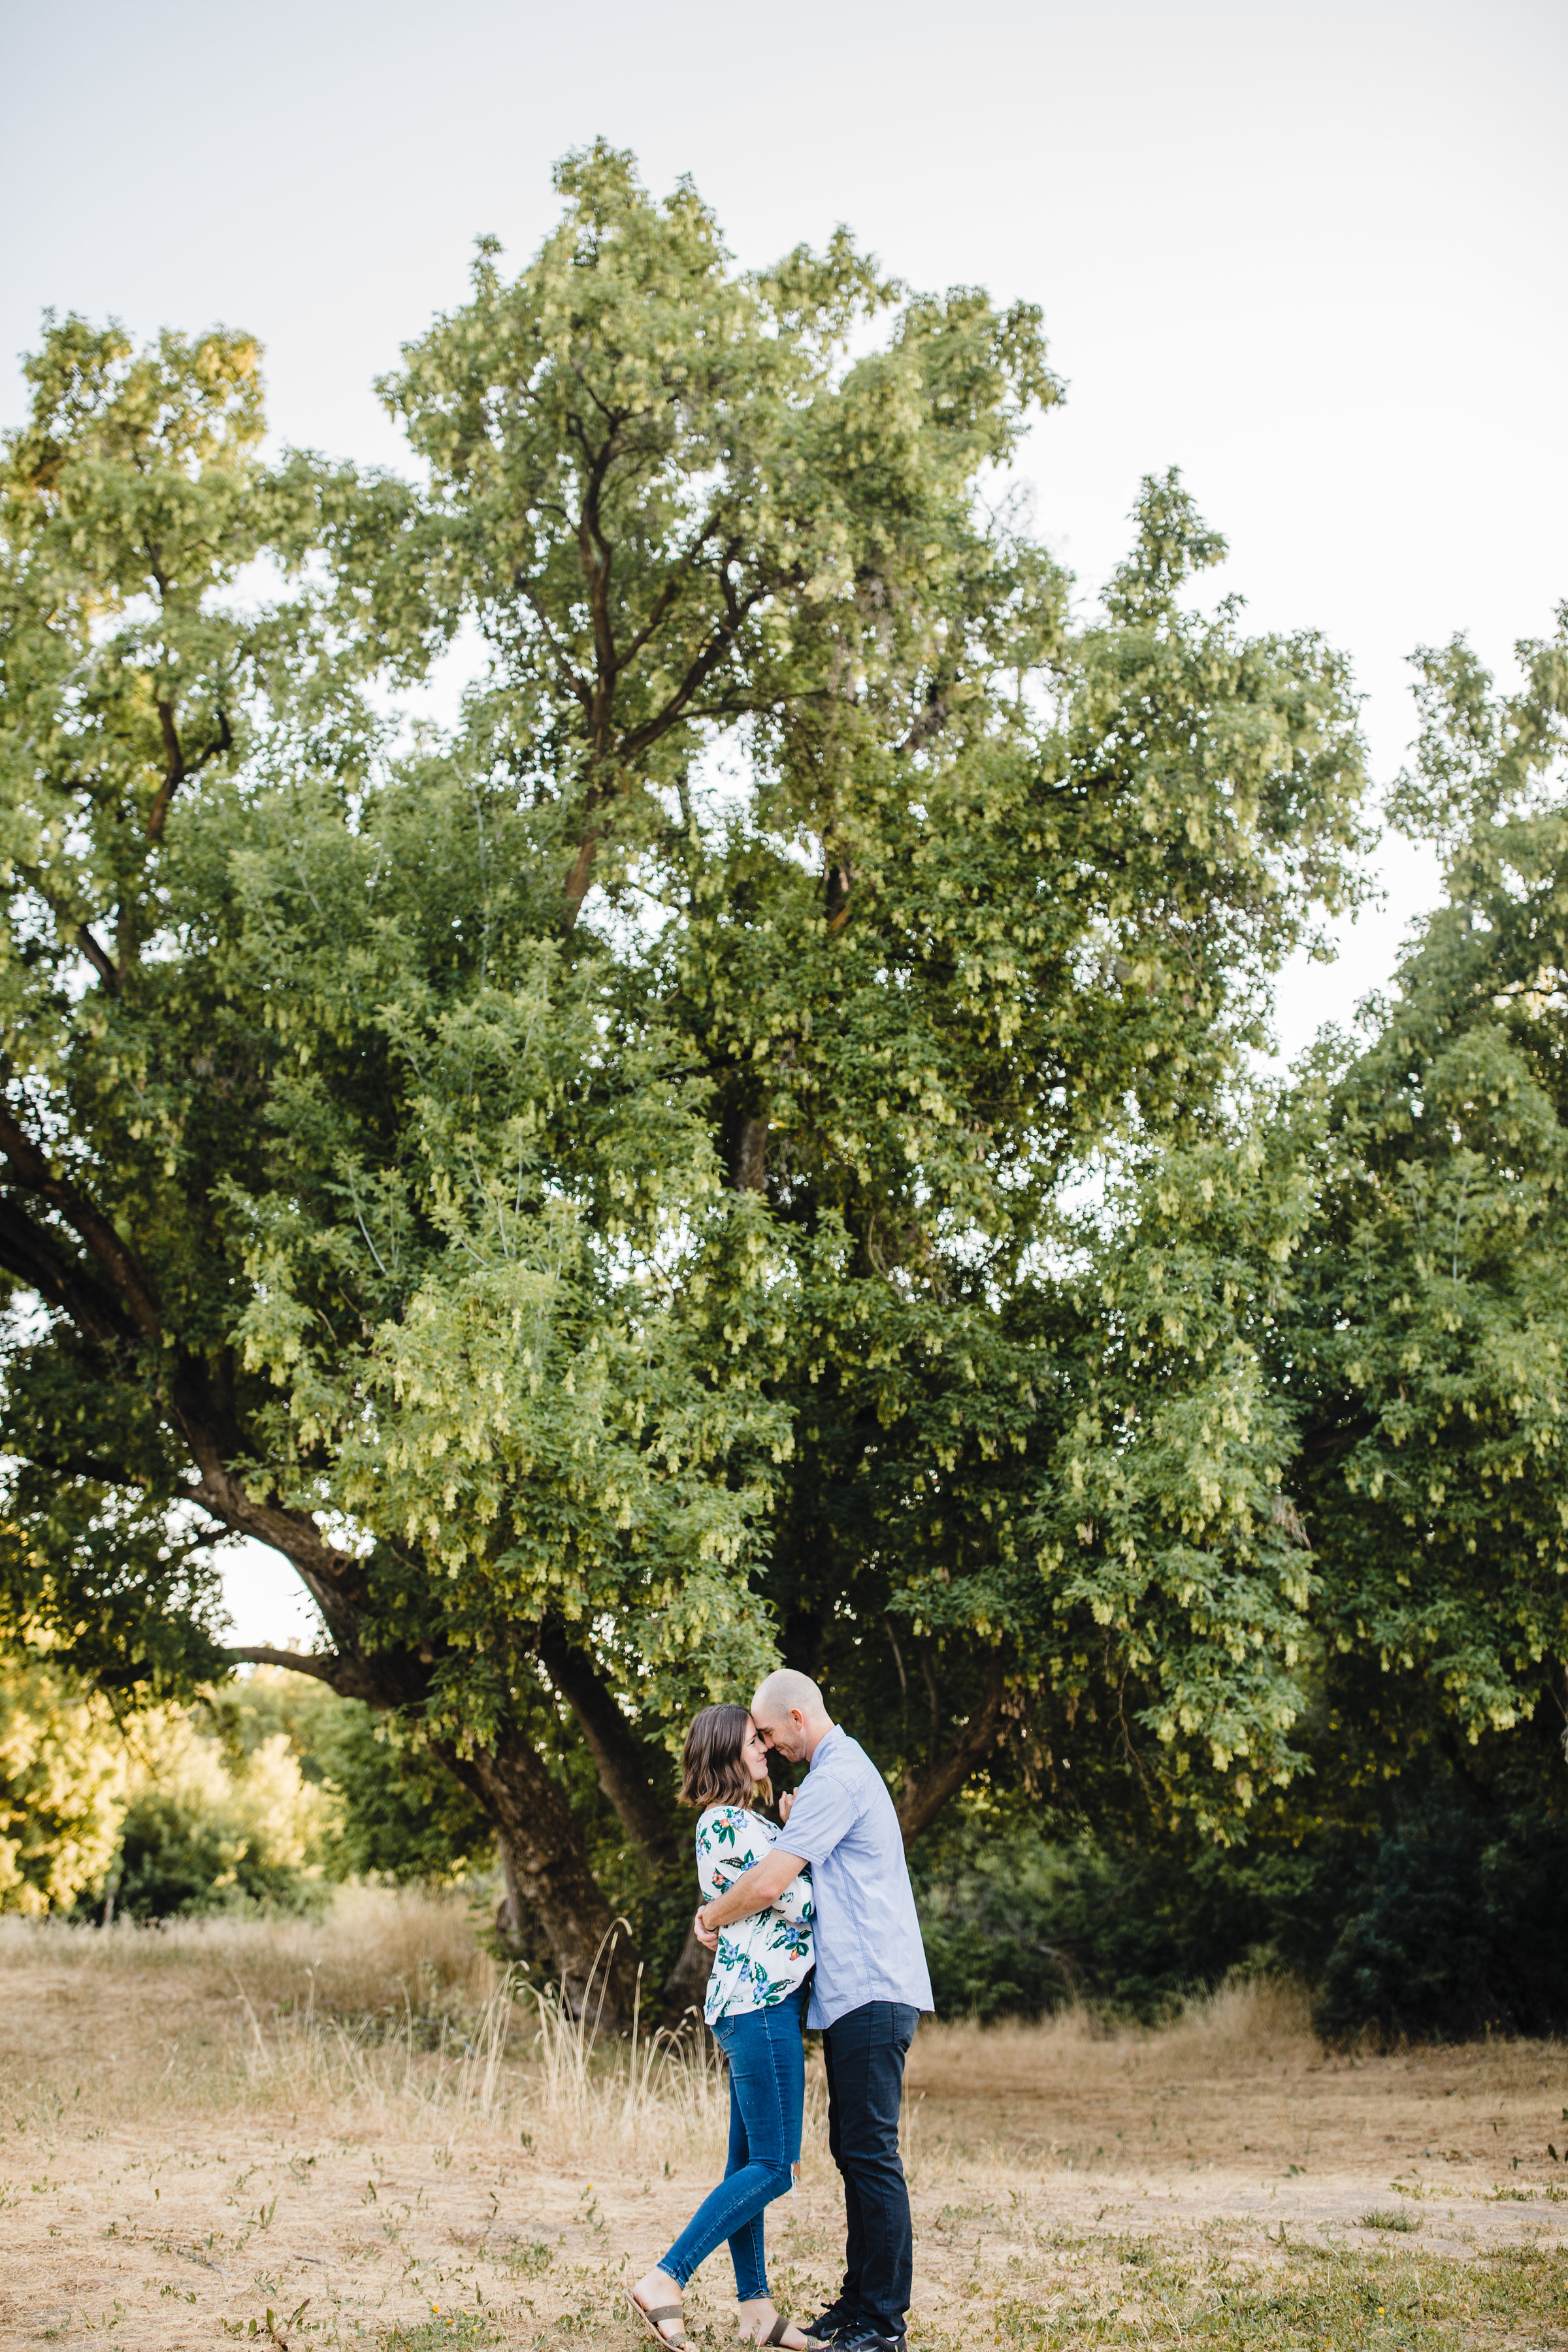 cache valley utah couples photographer smiling holding hands trees hugging